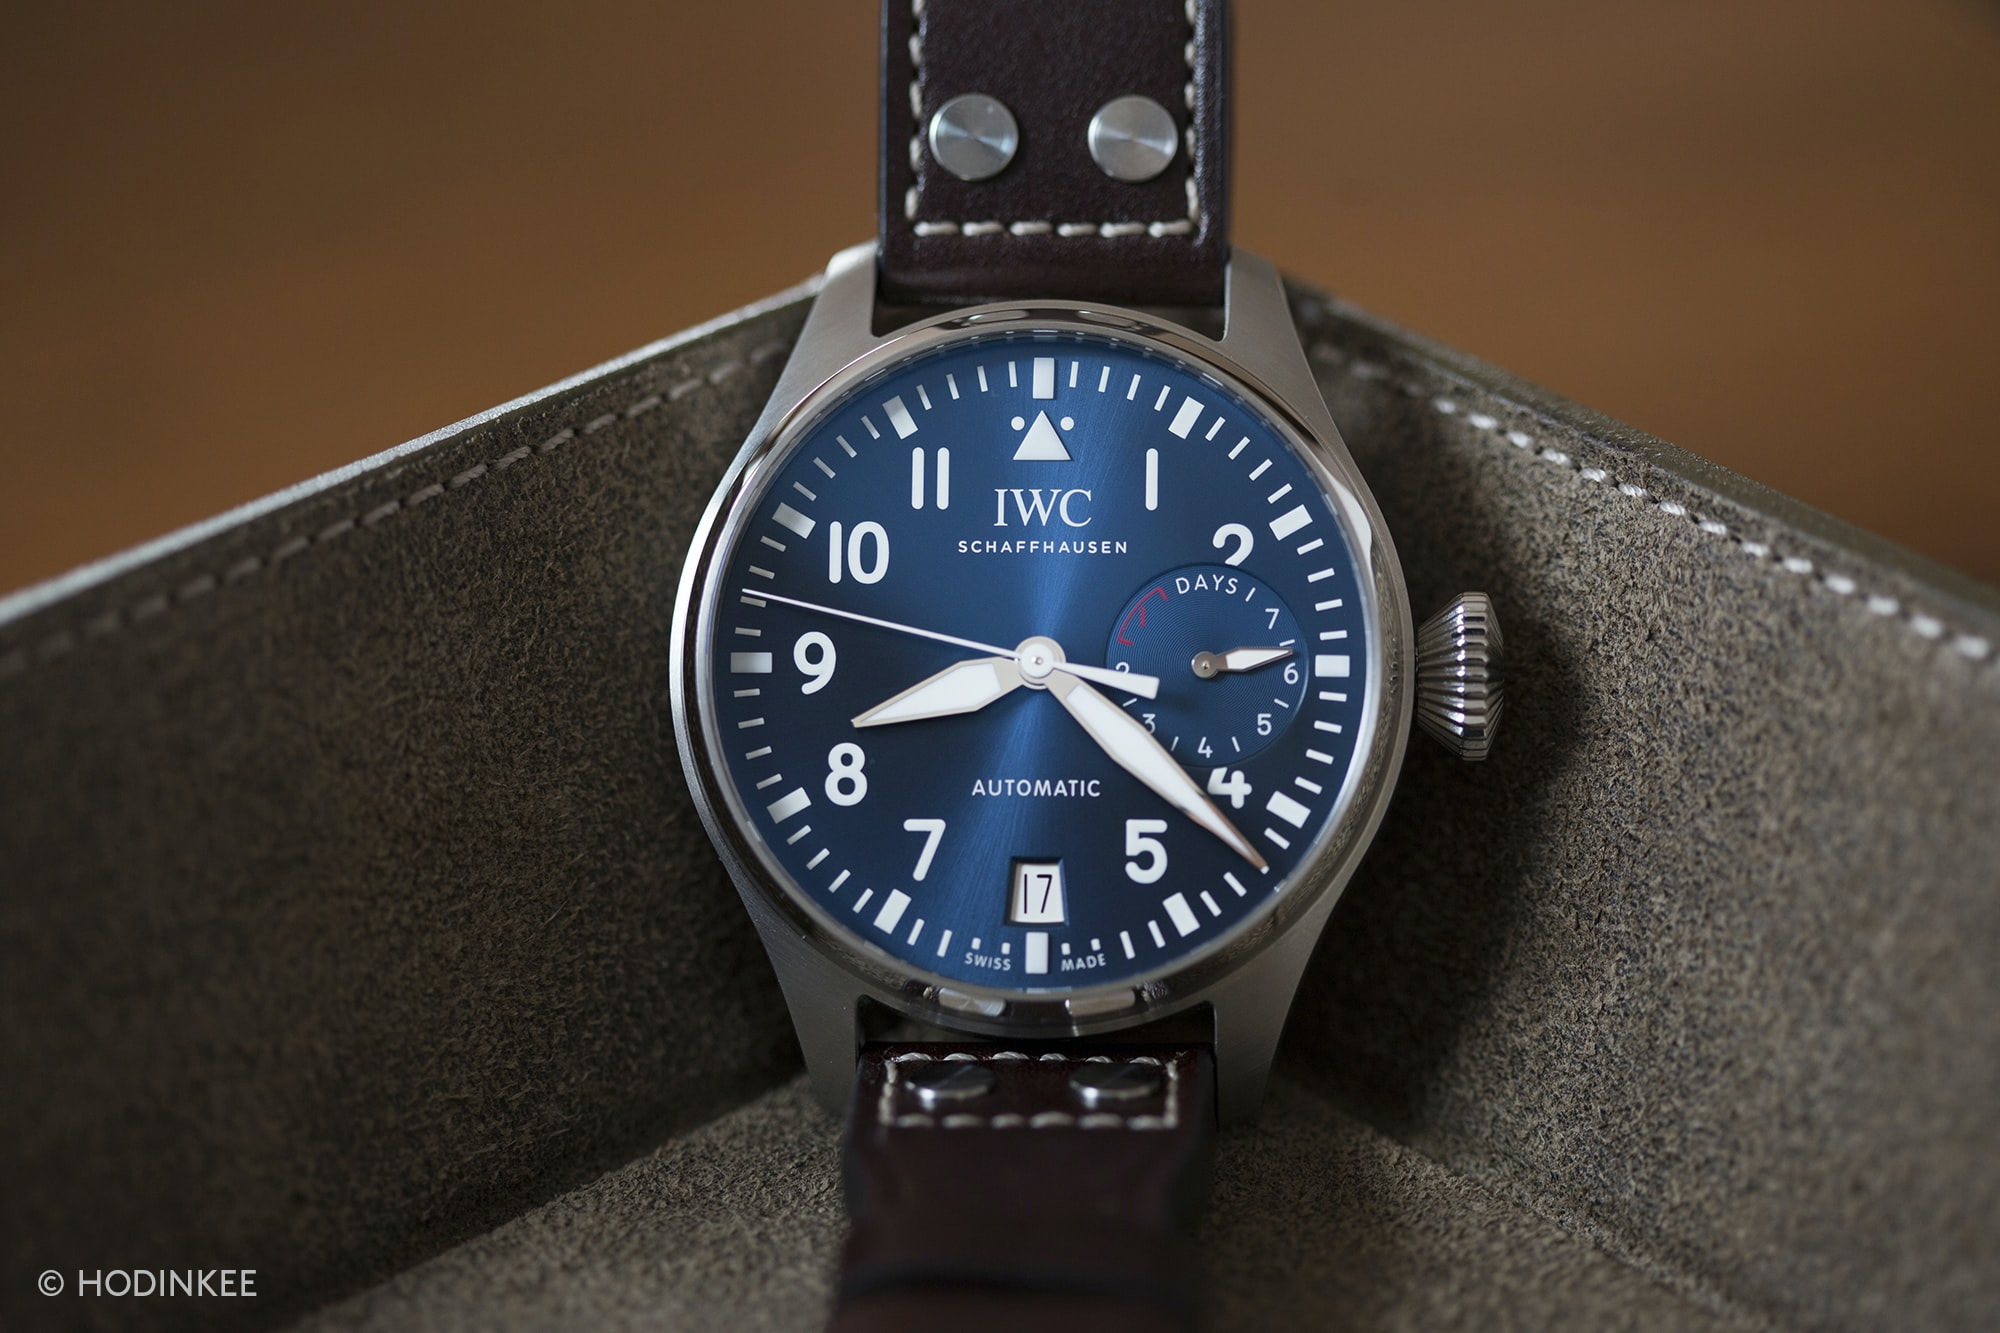 The Year In Review: The Top 20 Most Popular HODINKEE Posts Of 2016 The Year In Review: The Top 20 Most Popular HODINKEE Posts Of 2016 588A0015 copy 2